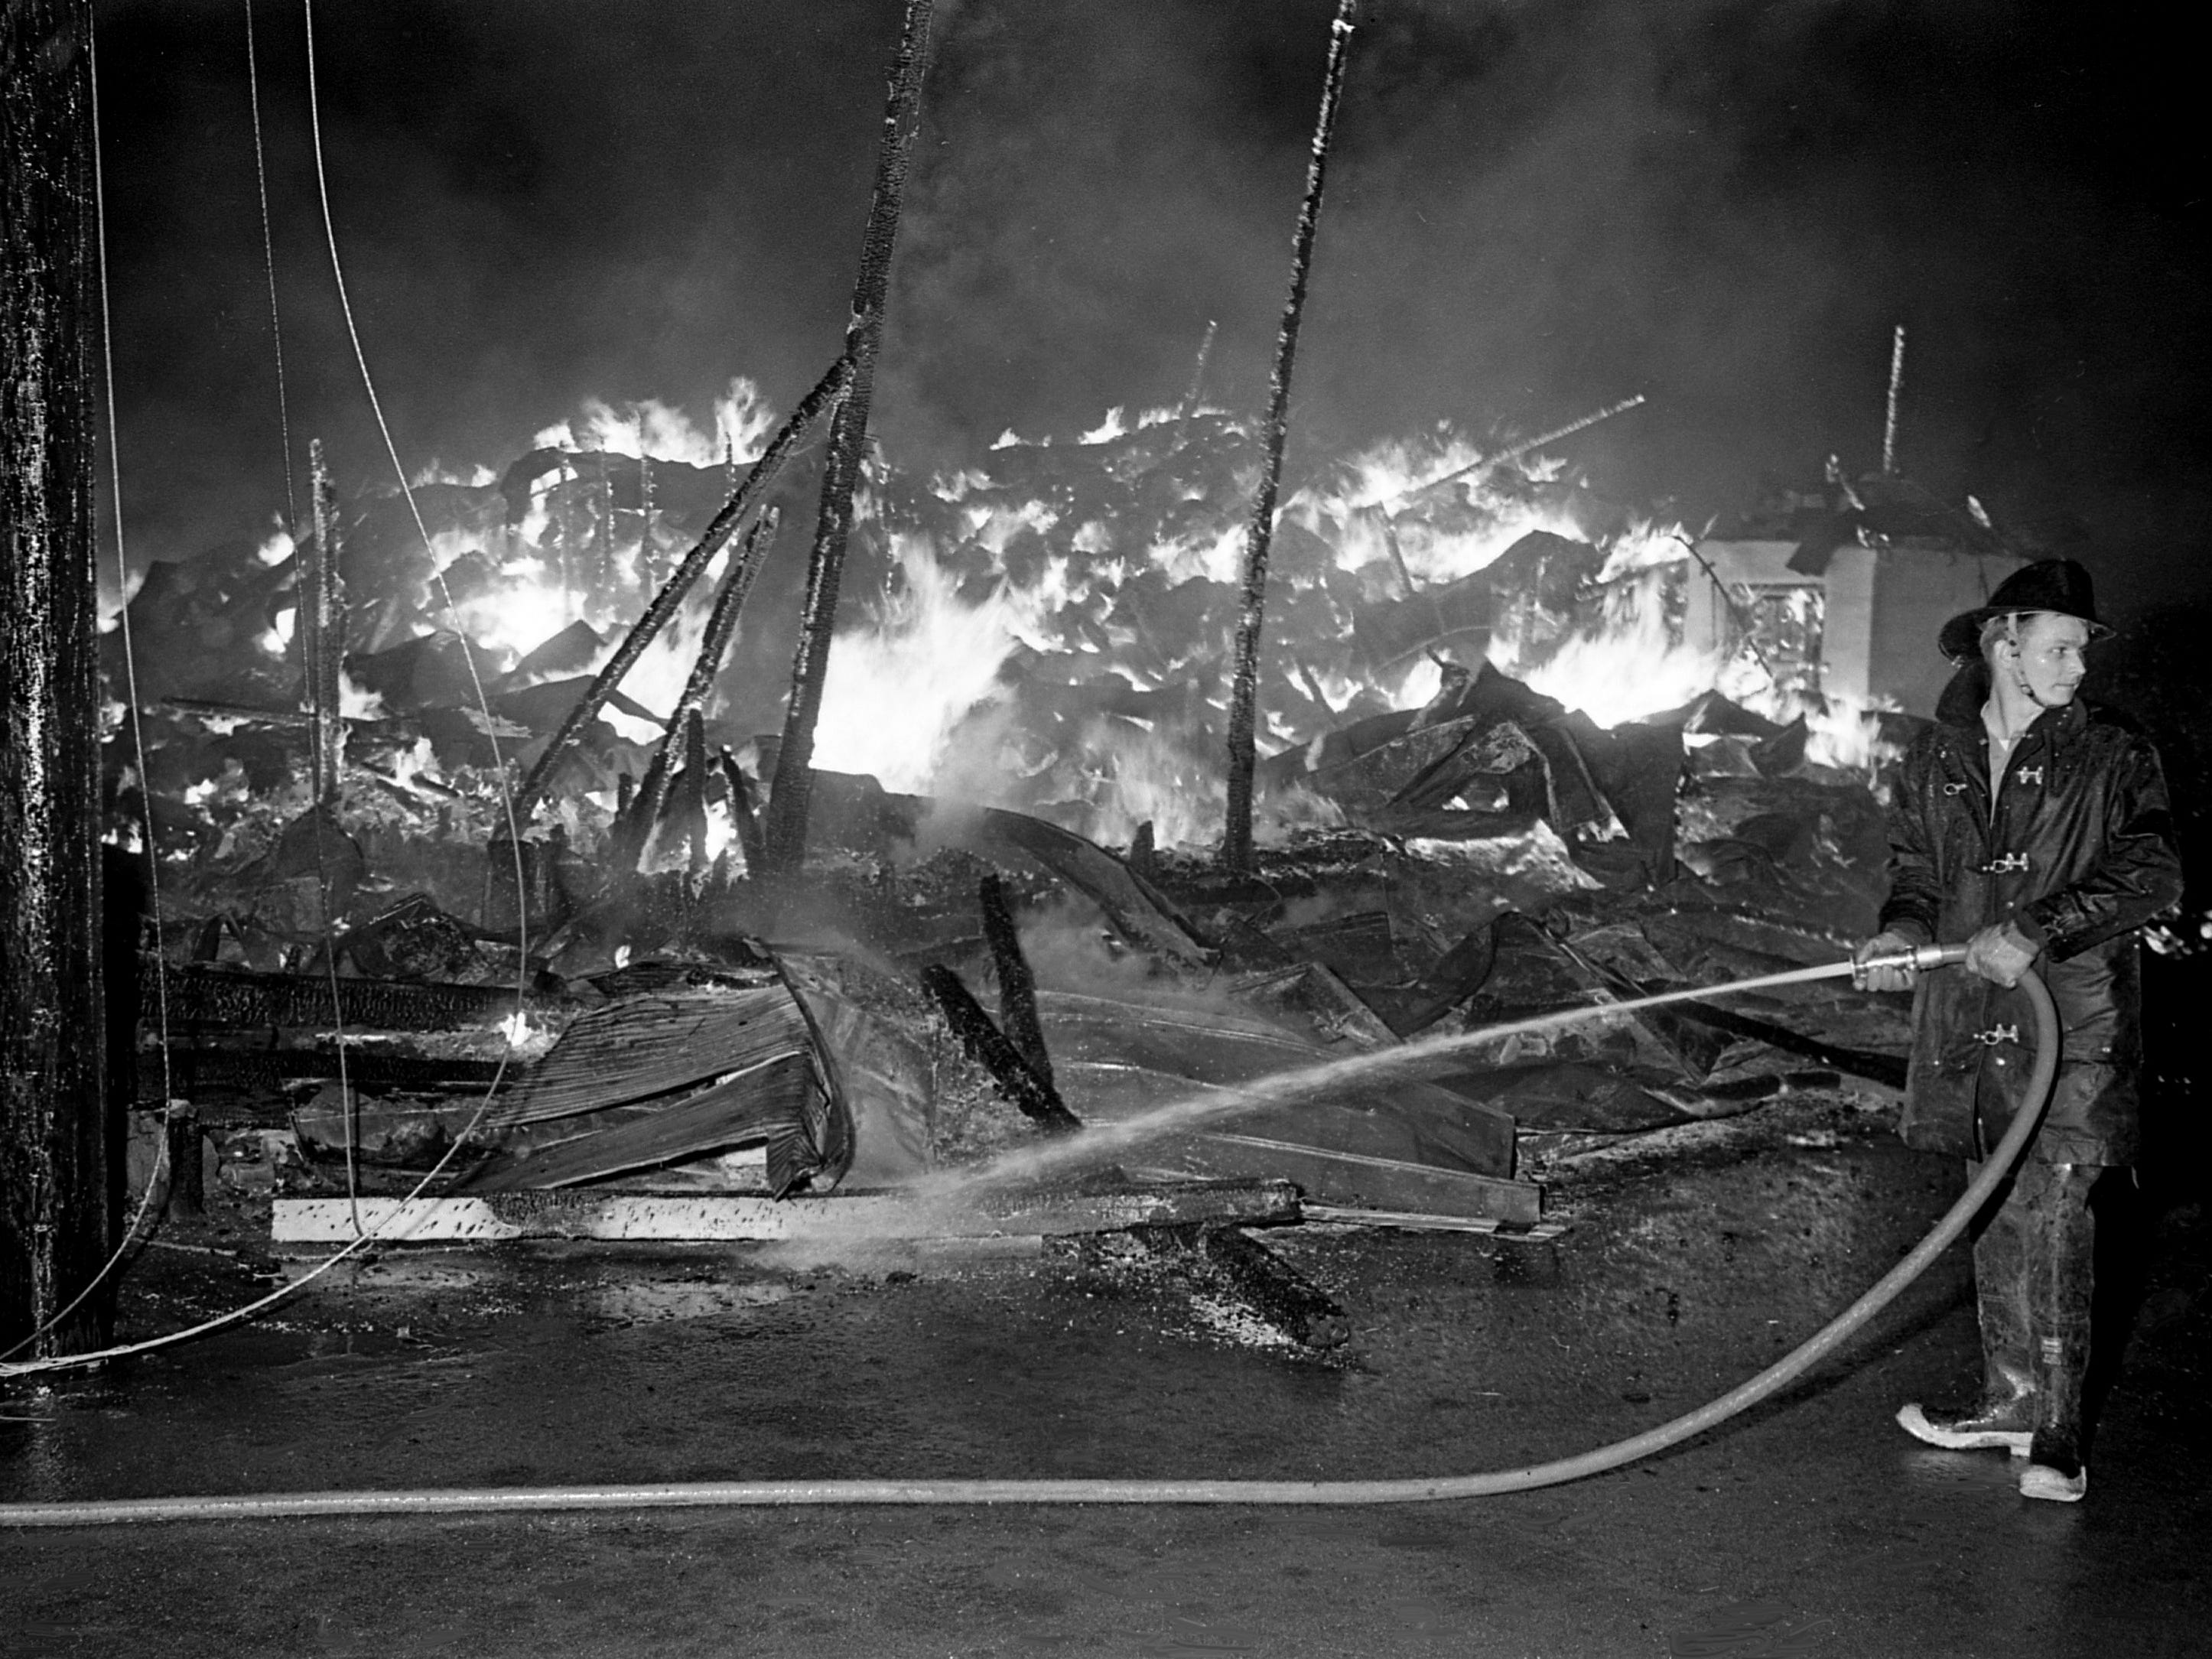 A firefighter works to douse the burning remains of a building Dec. 18, 1968, while others down the street fight to contain the blaze, which destroyed several businesses in Nolensville. Three buildings housing the businesses were burned to the ground, and flames threatened the Harper National Bank and Post Office building for more than an hour.